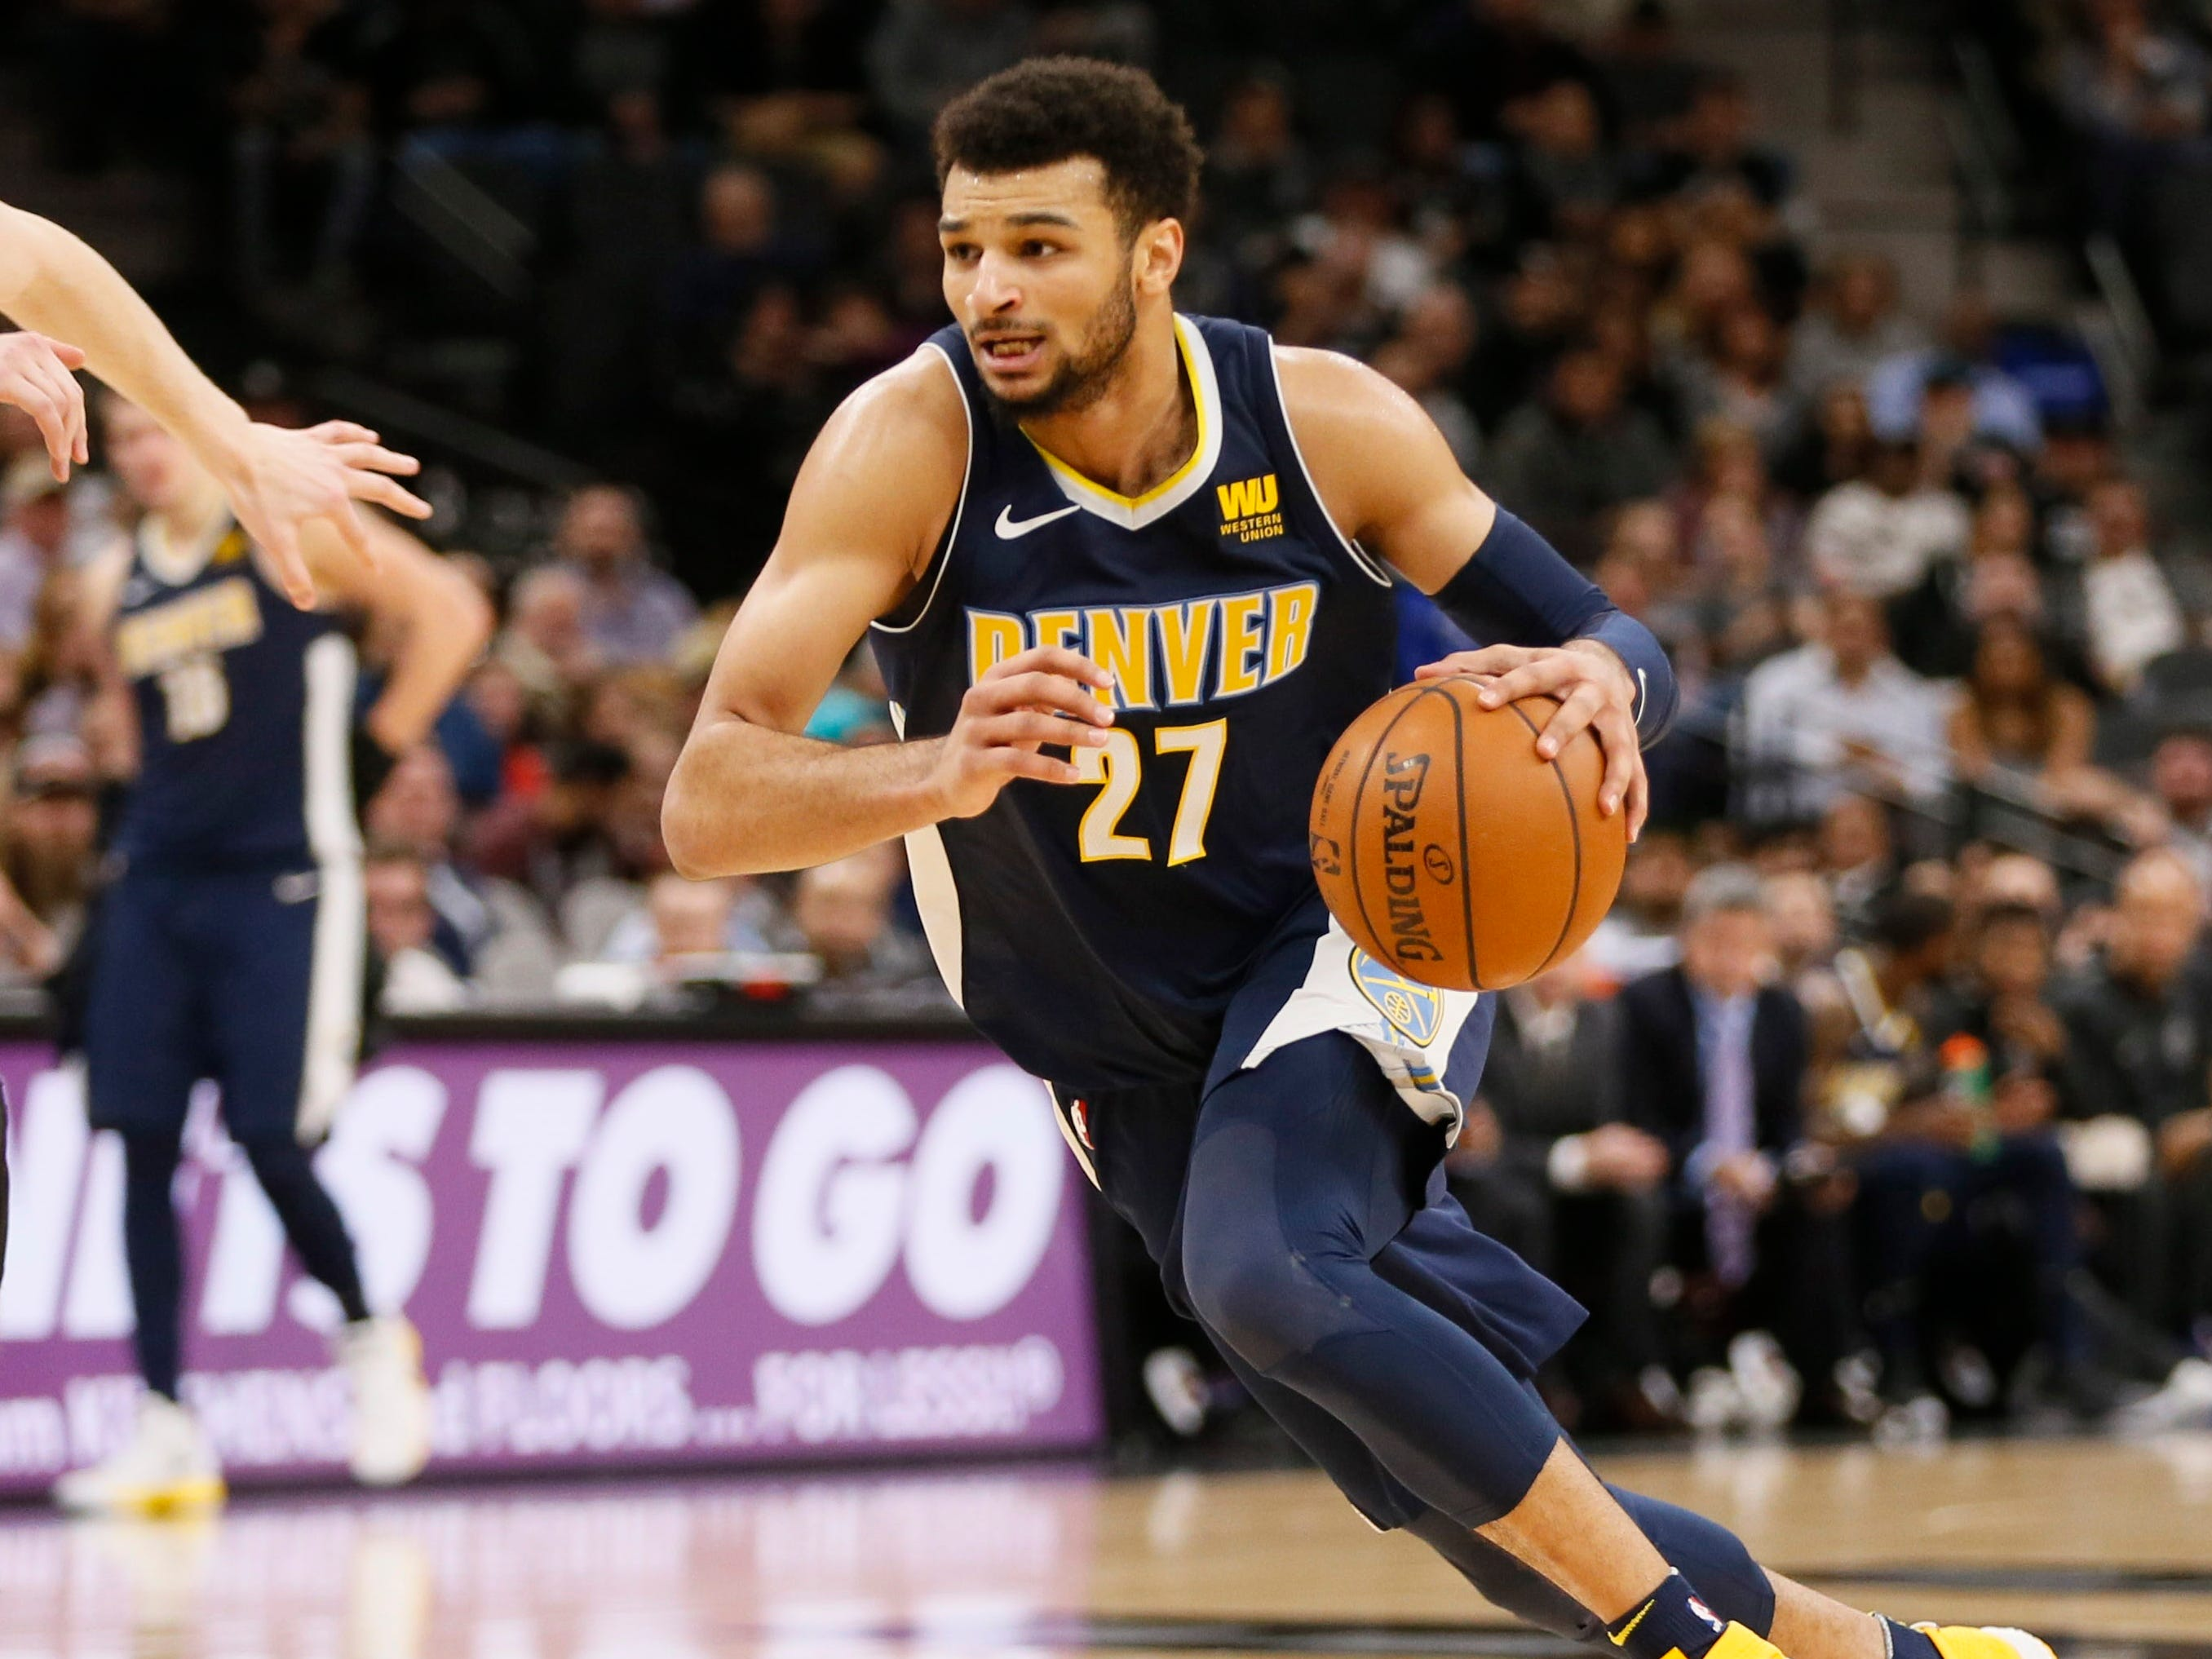 Jamal Murray, Denver Nuggets — 21 (born 2/23/1997)